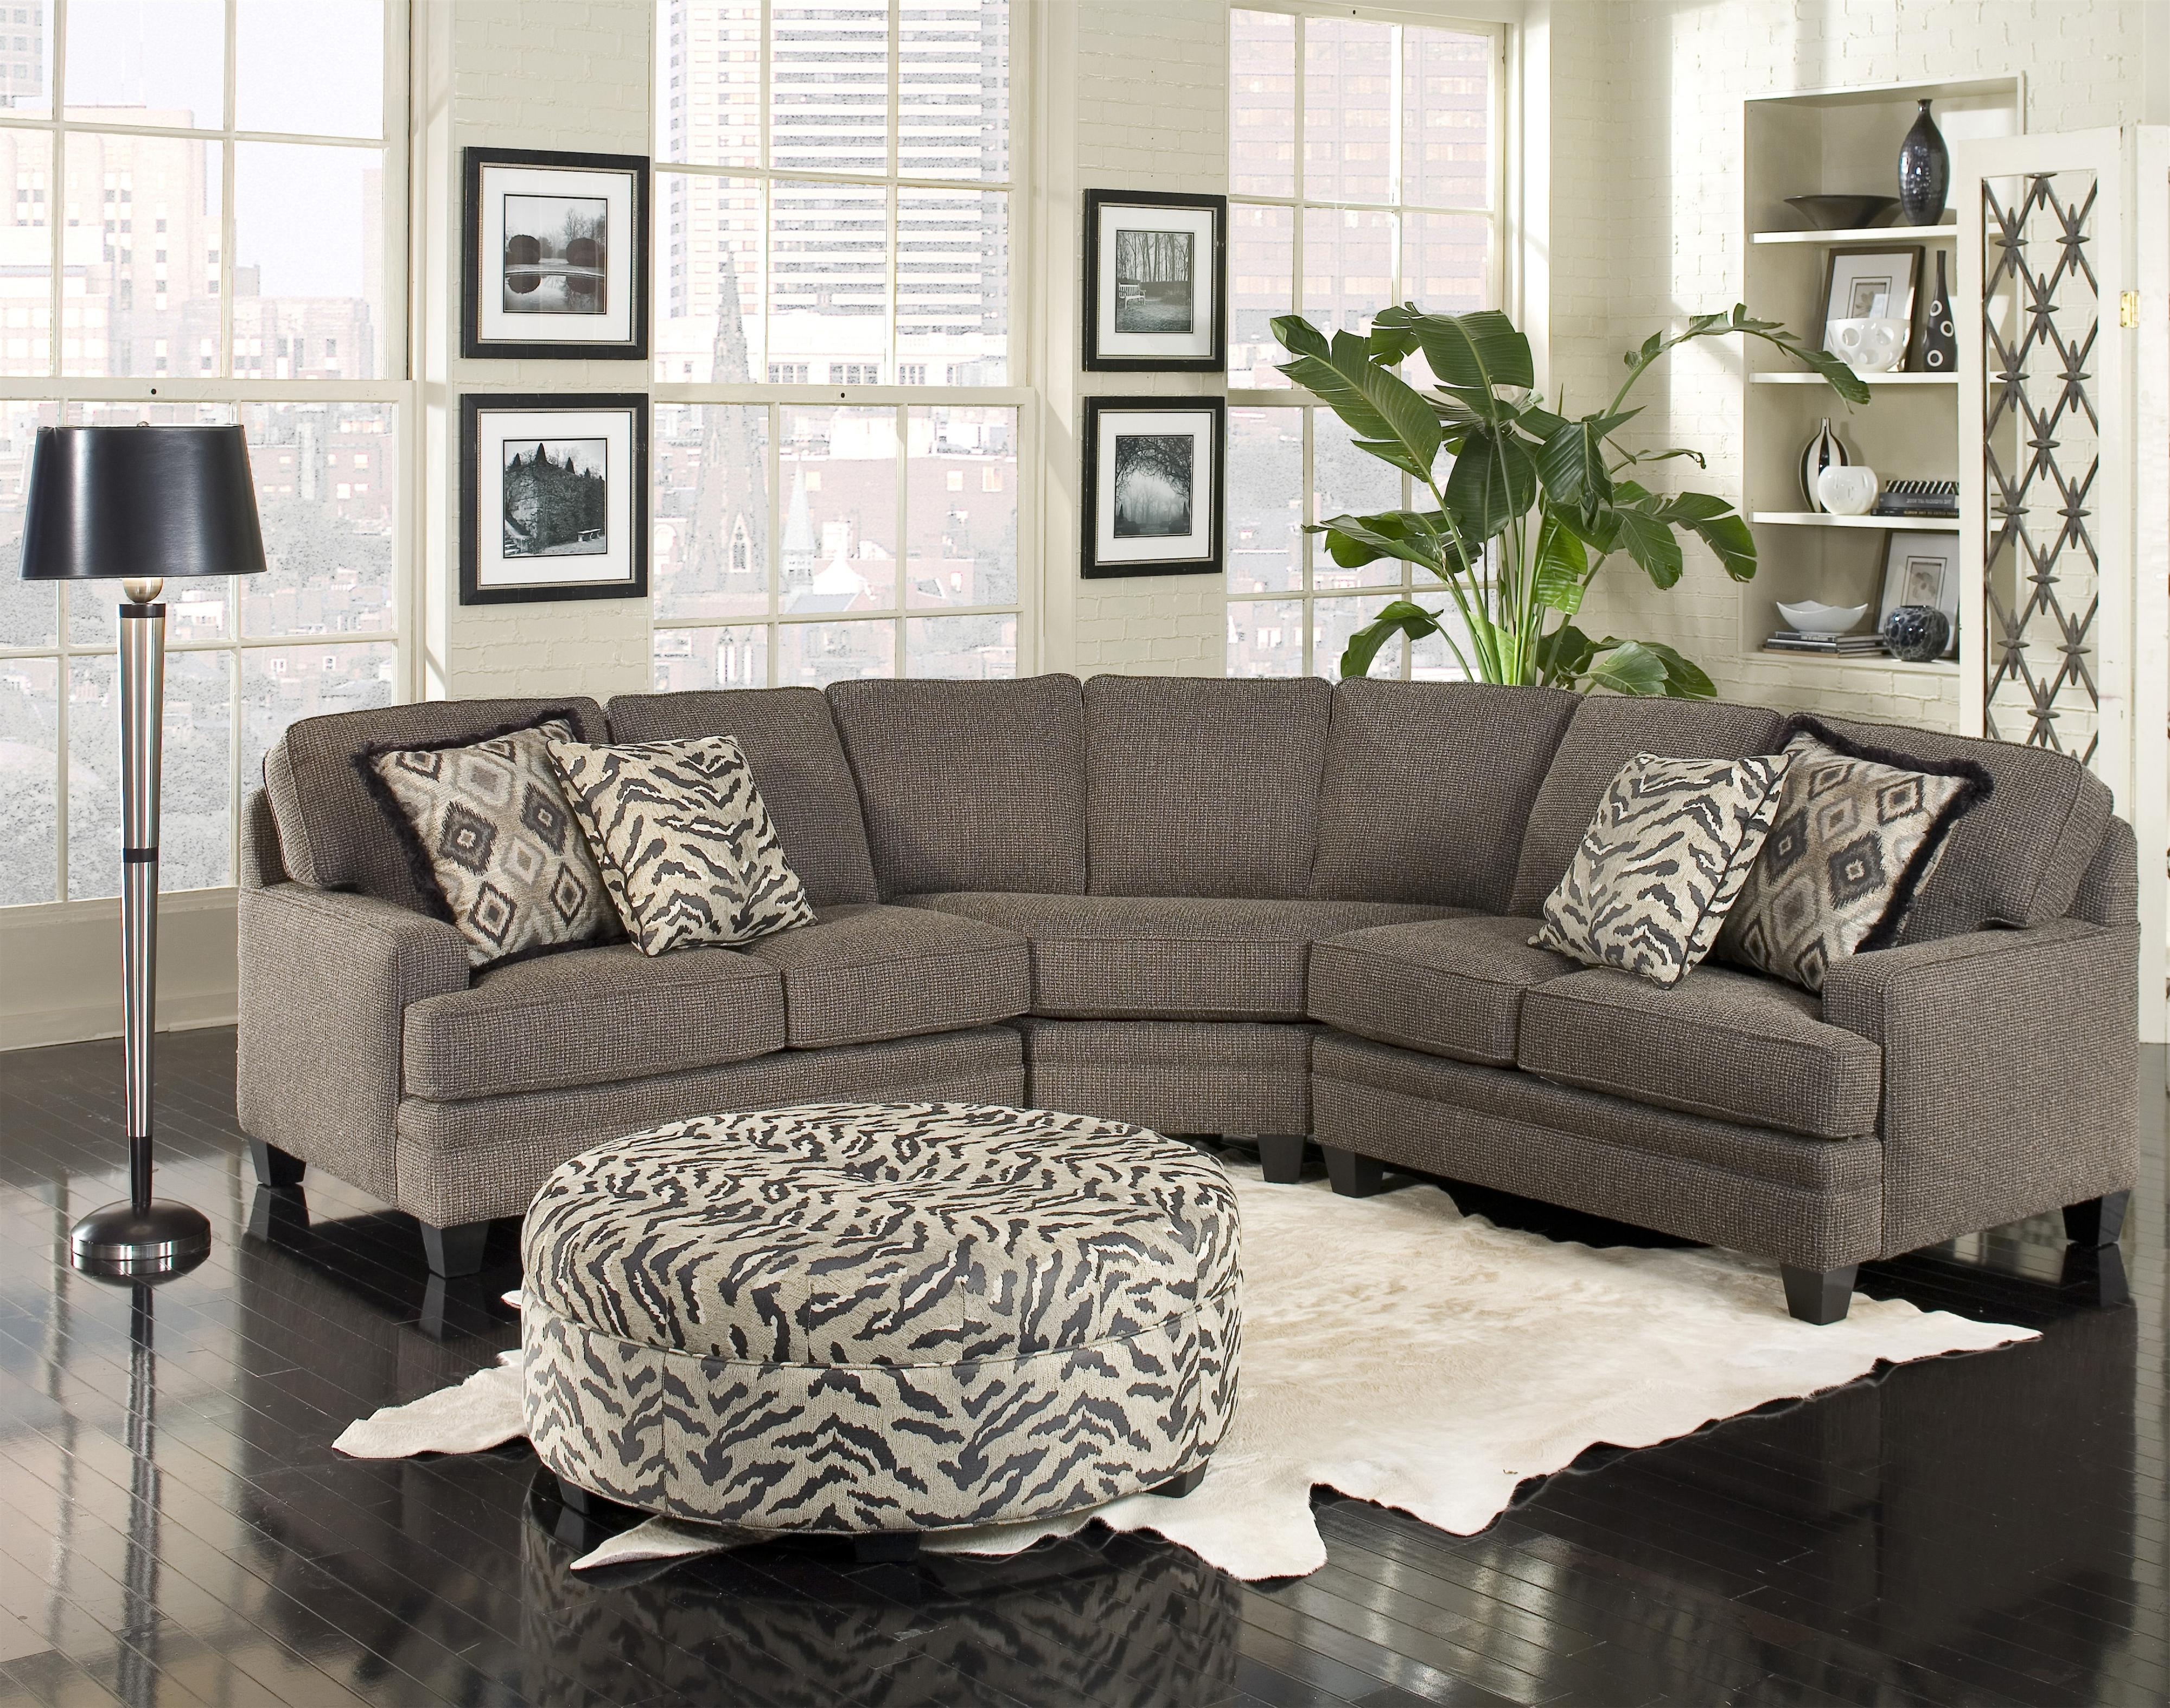 Well Liked Harrisburg Pa Sectional Sofas Within Build Your Own (5000 Series) Five Person Sectional Sofa With (View 15 of 15)